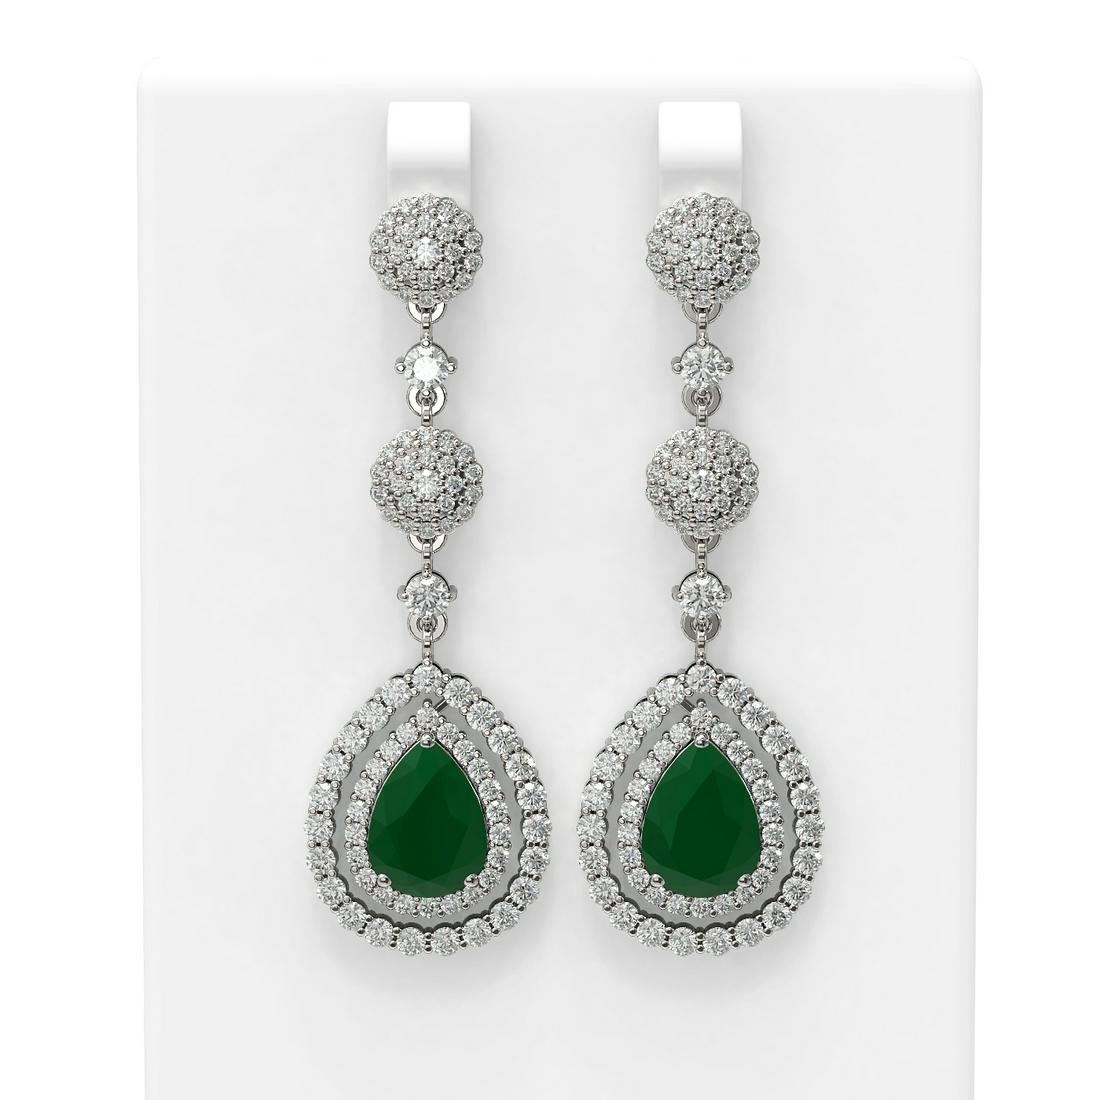 11.87 ctw Emerald & Diamond Earrings 18K White Gold